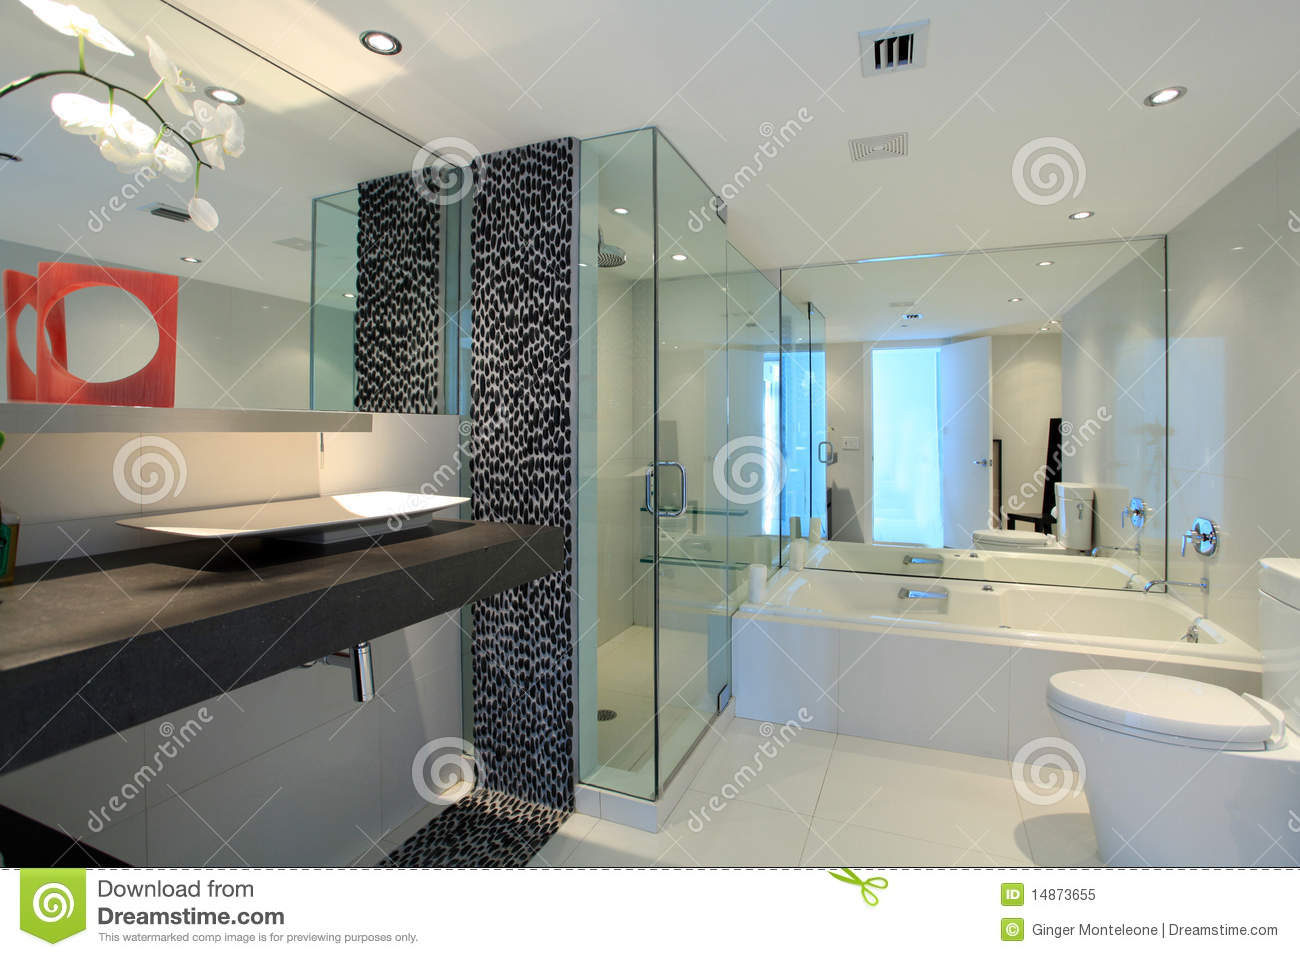 Salle de bains contemporaine photo libre de droits image - Salle de bain contemporaine photo ...